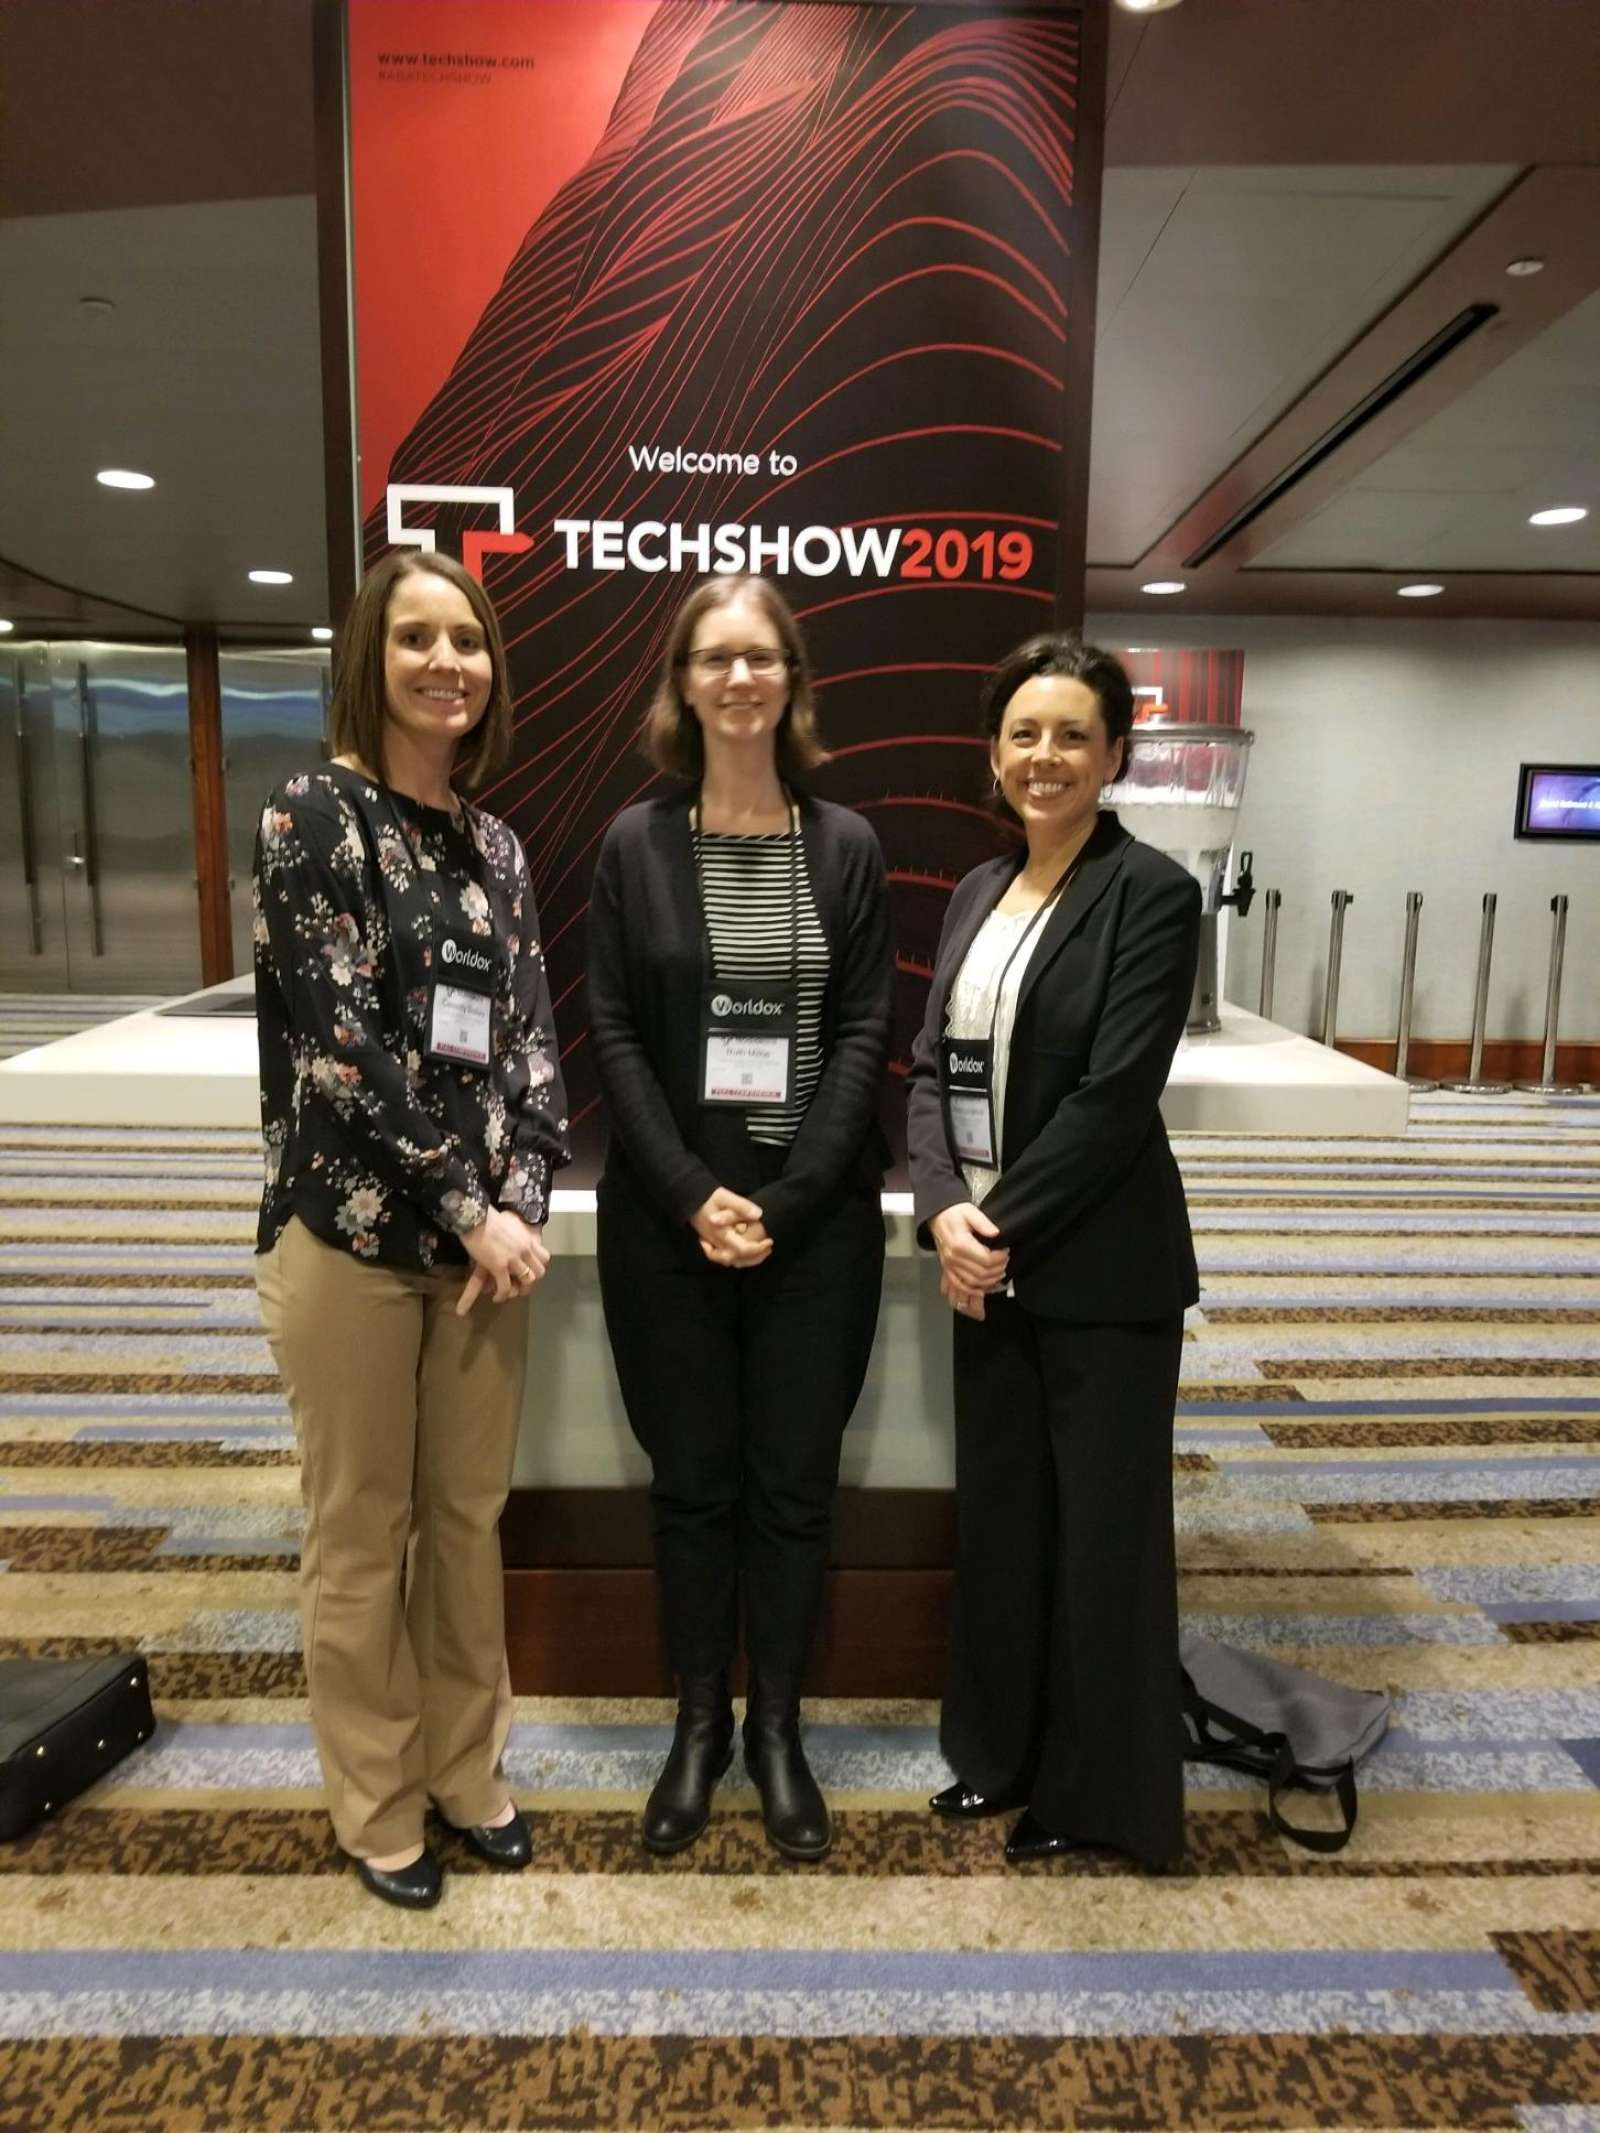 The Lynn Jackson team stays up-to-date on legal technologies at the ABA TECHSHOW